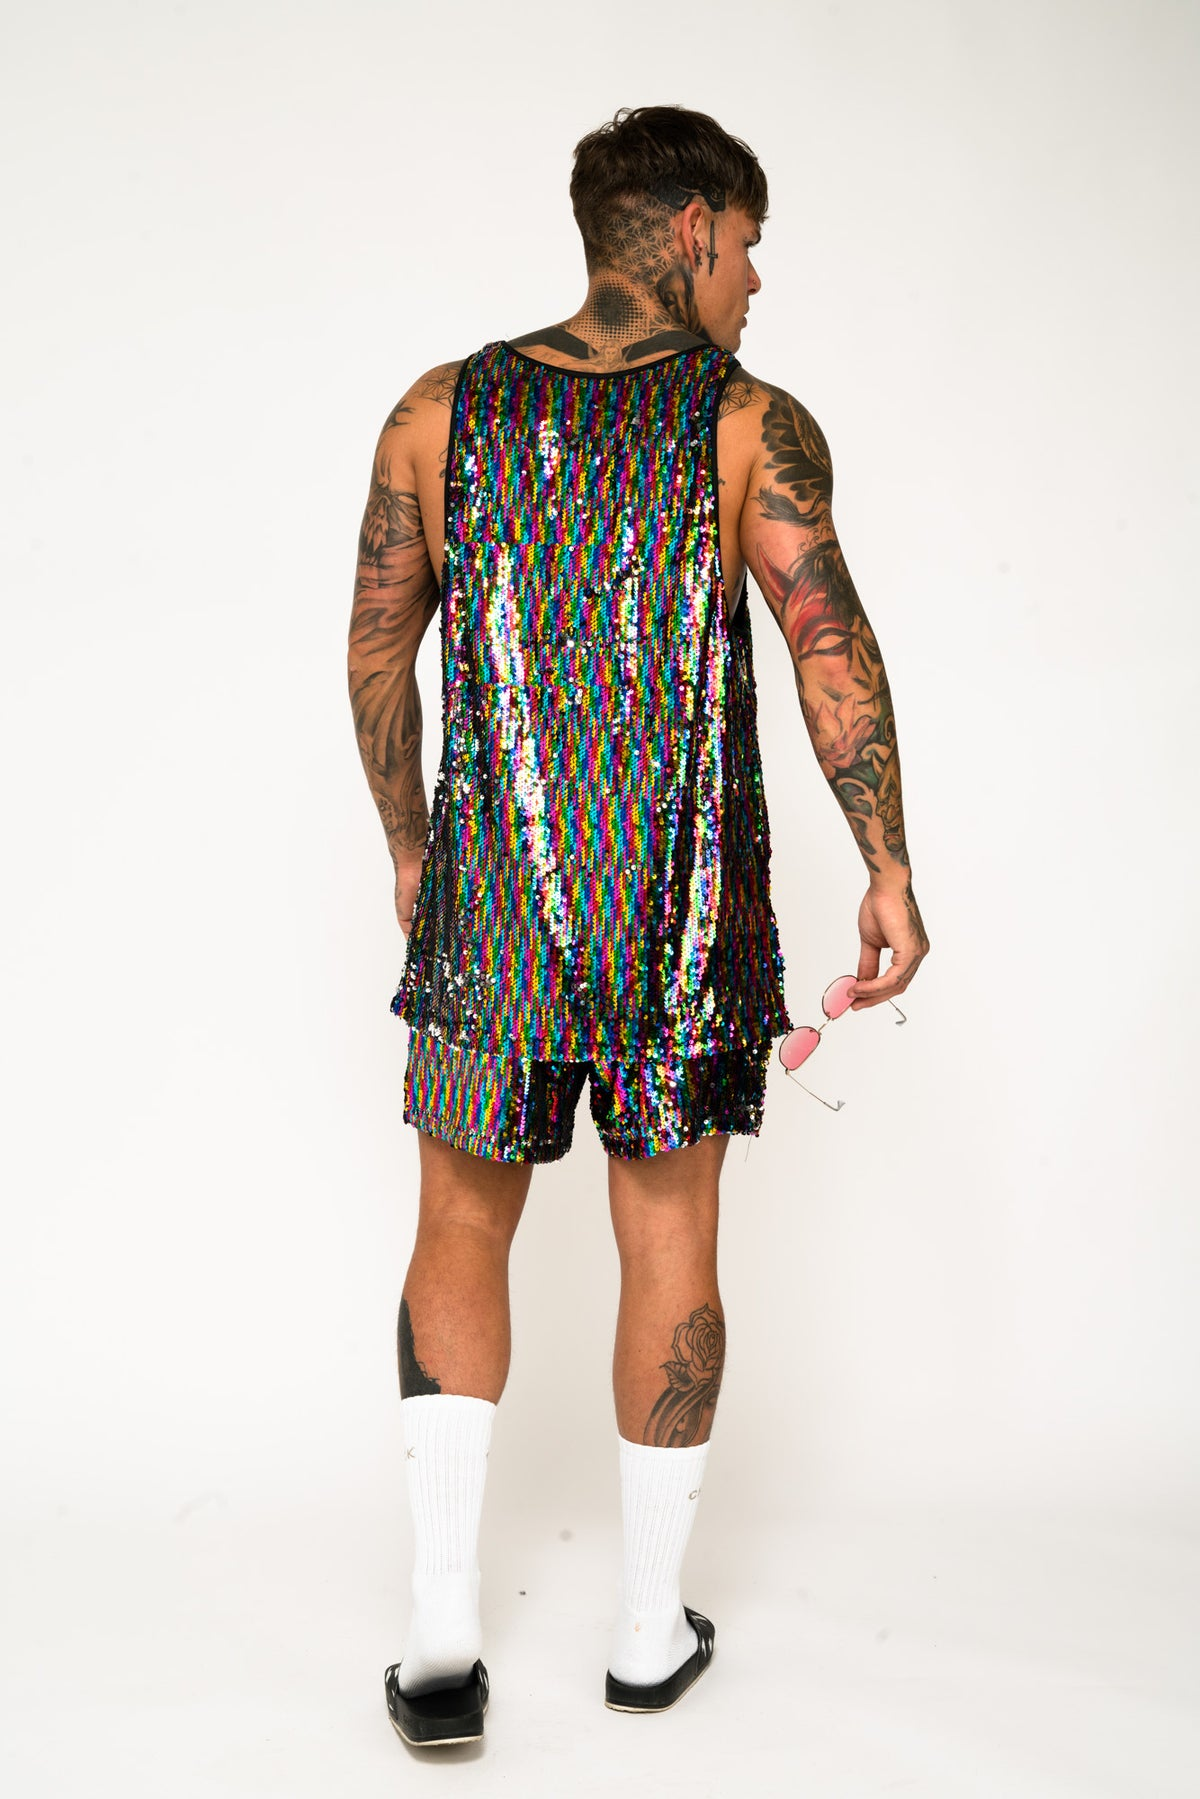 Roadies of 66 Oversized Rainbow Sequin Vest